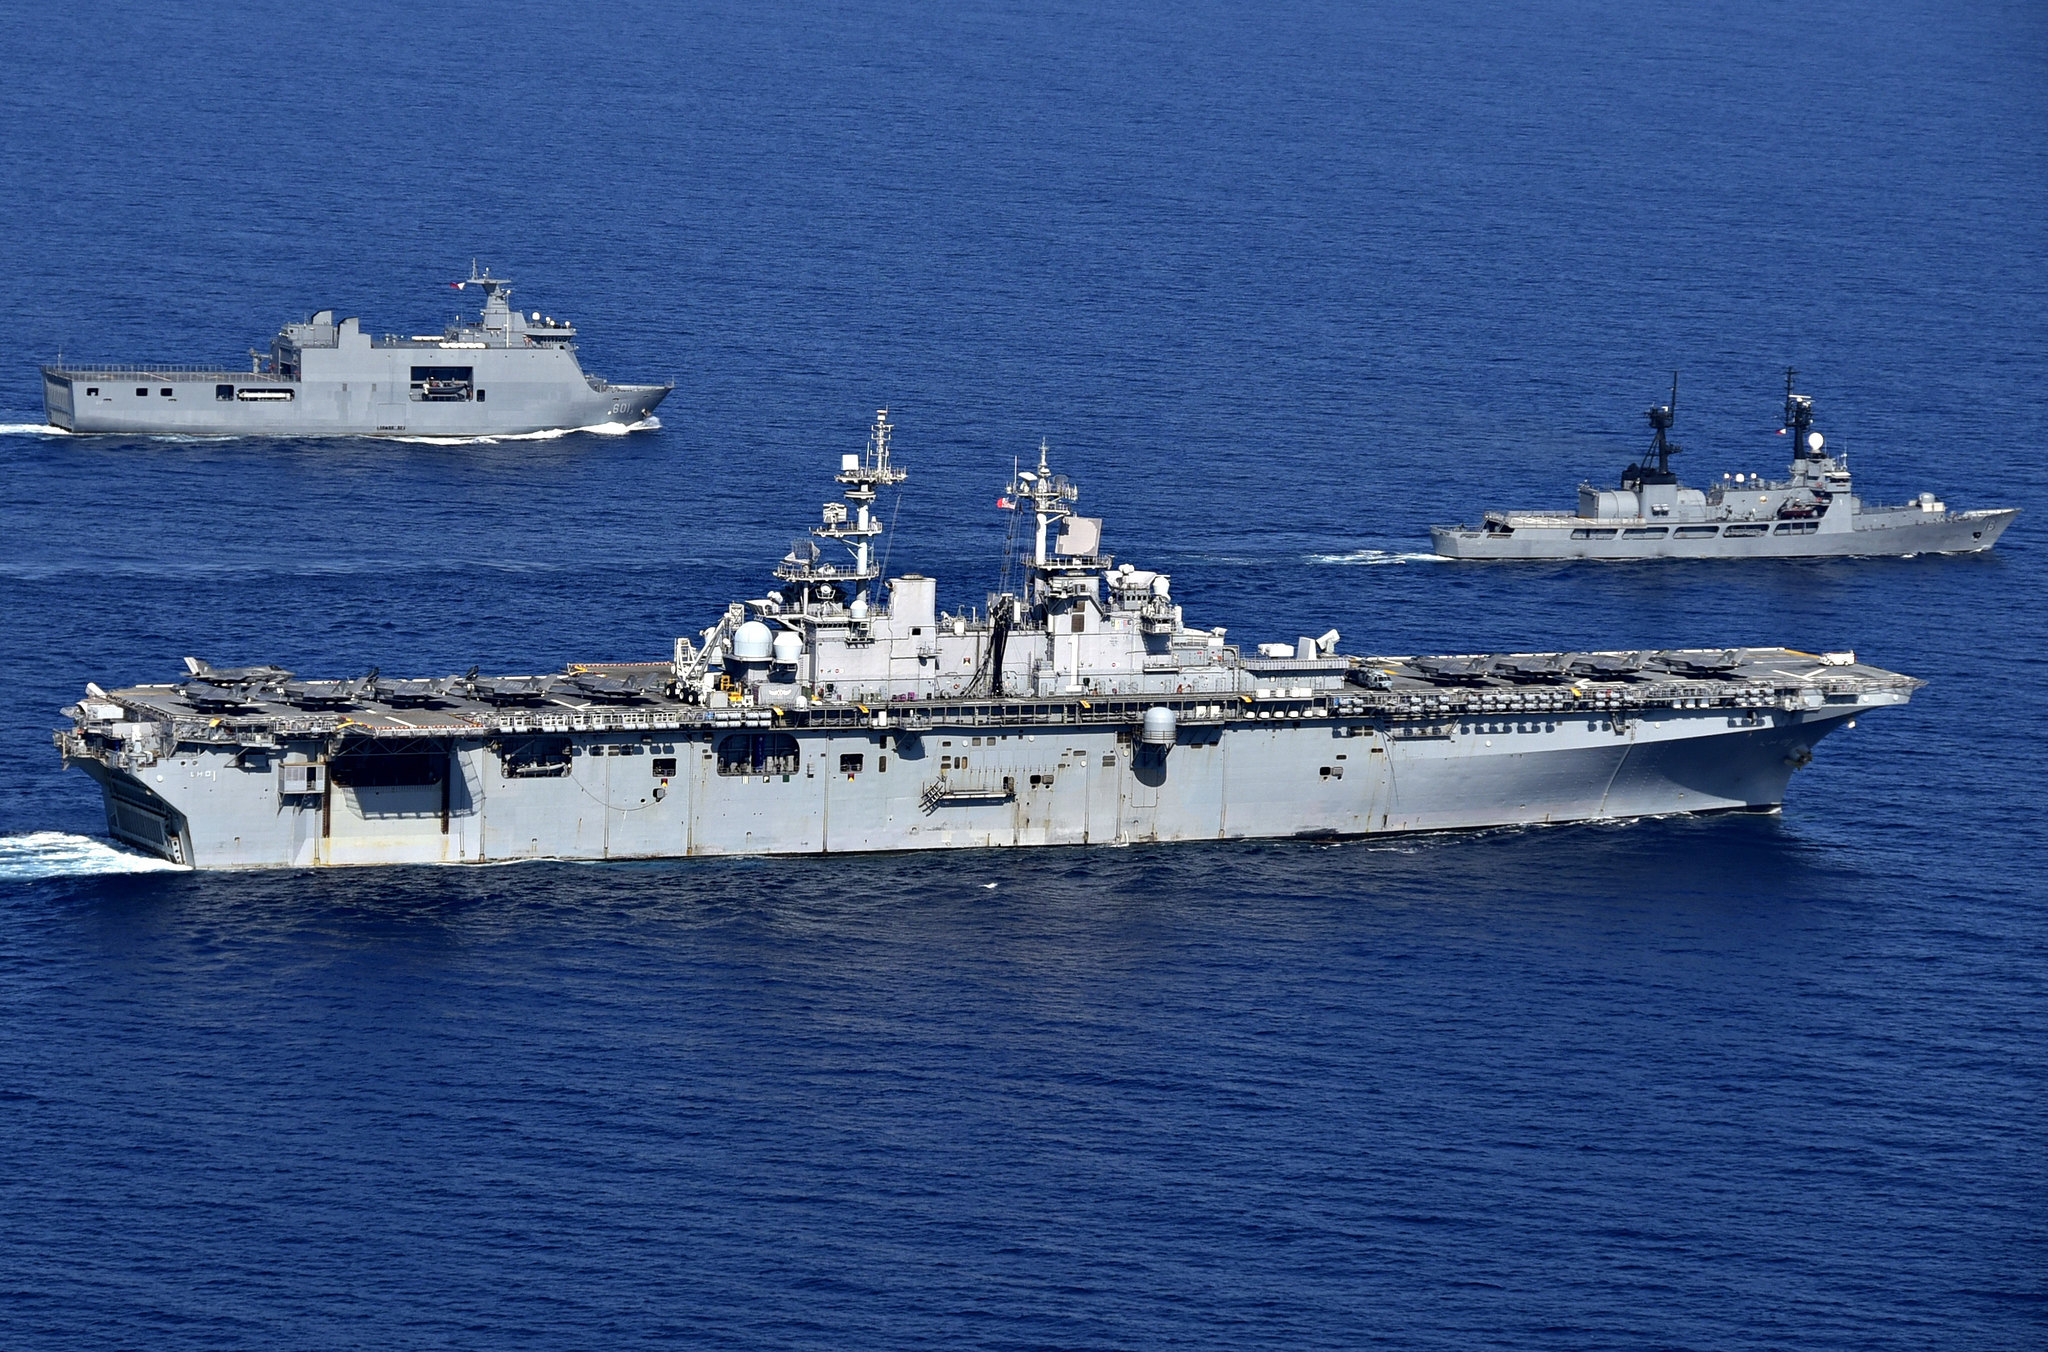 USS Wasp carries full load of F-35s alongside Philippine navy